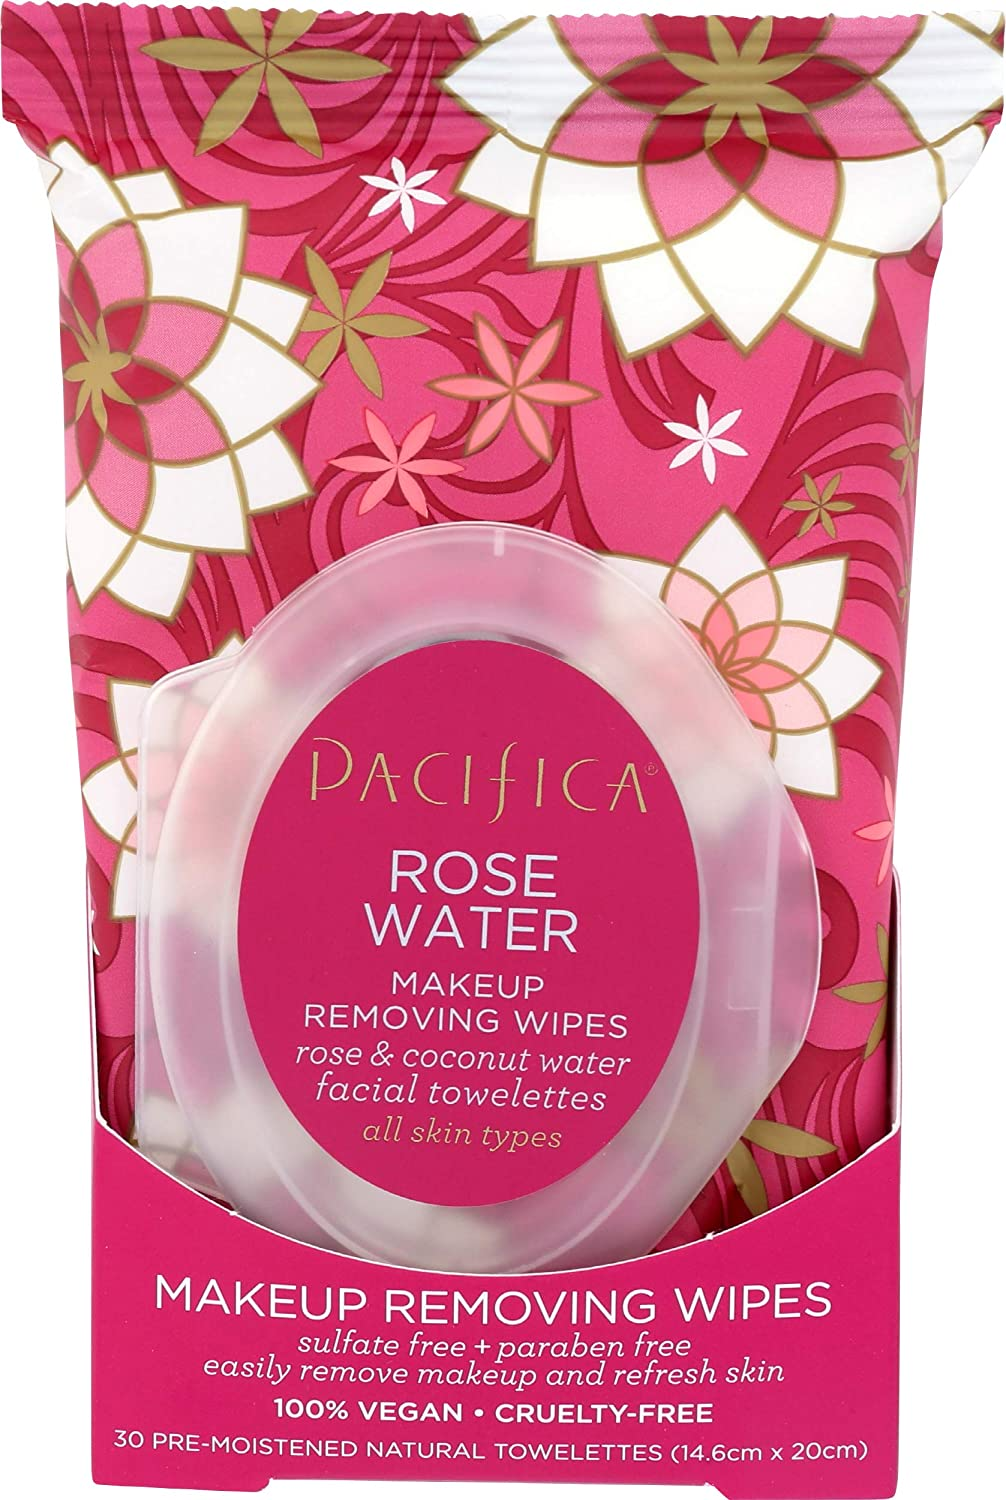 Pacifica Beauty Rose Water Makeup Removing Wipes, 30 Count